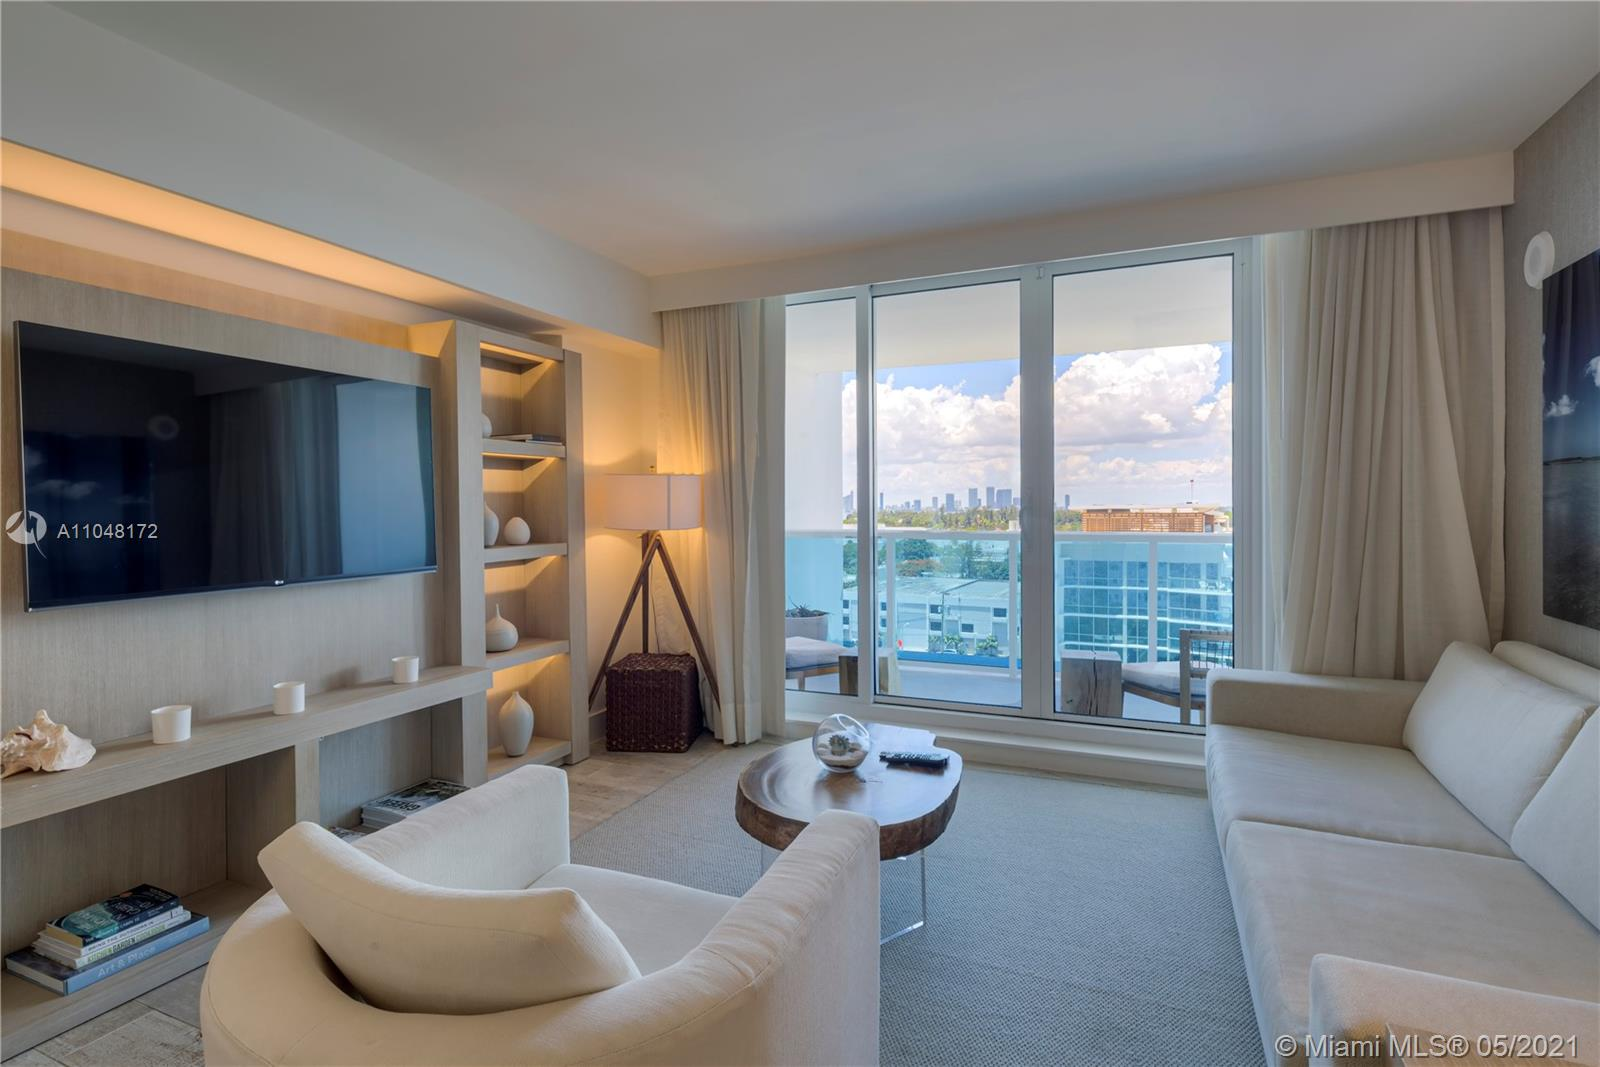 Enjoy direct ocean views from this gorgeous 2 bedroom condo with 1,481 Sq. Ft of living space. Guests have access to all hotels amenities such as, spa, gym, 4 swimming pools, 8 restaurants, beach service, cabanas and so much more!